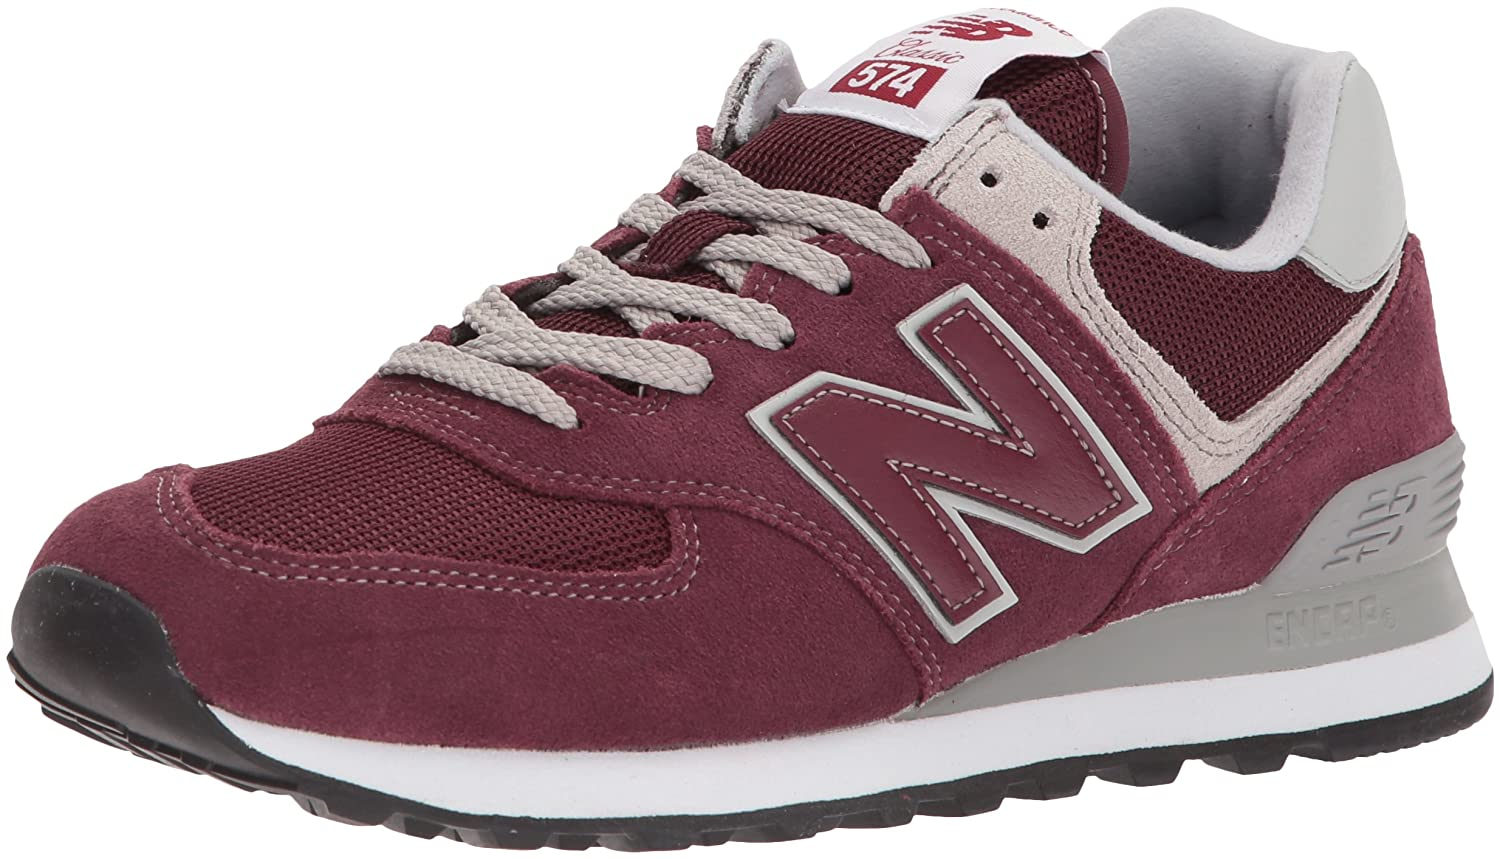 New Balance Women's Iconic 574 Sneaker B0725YG2VM 12 D US|Burgundy